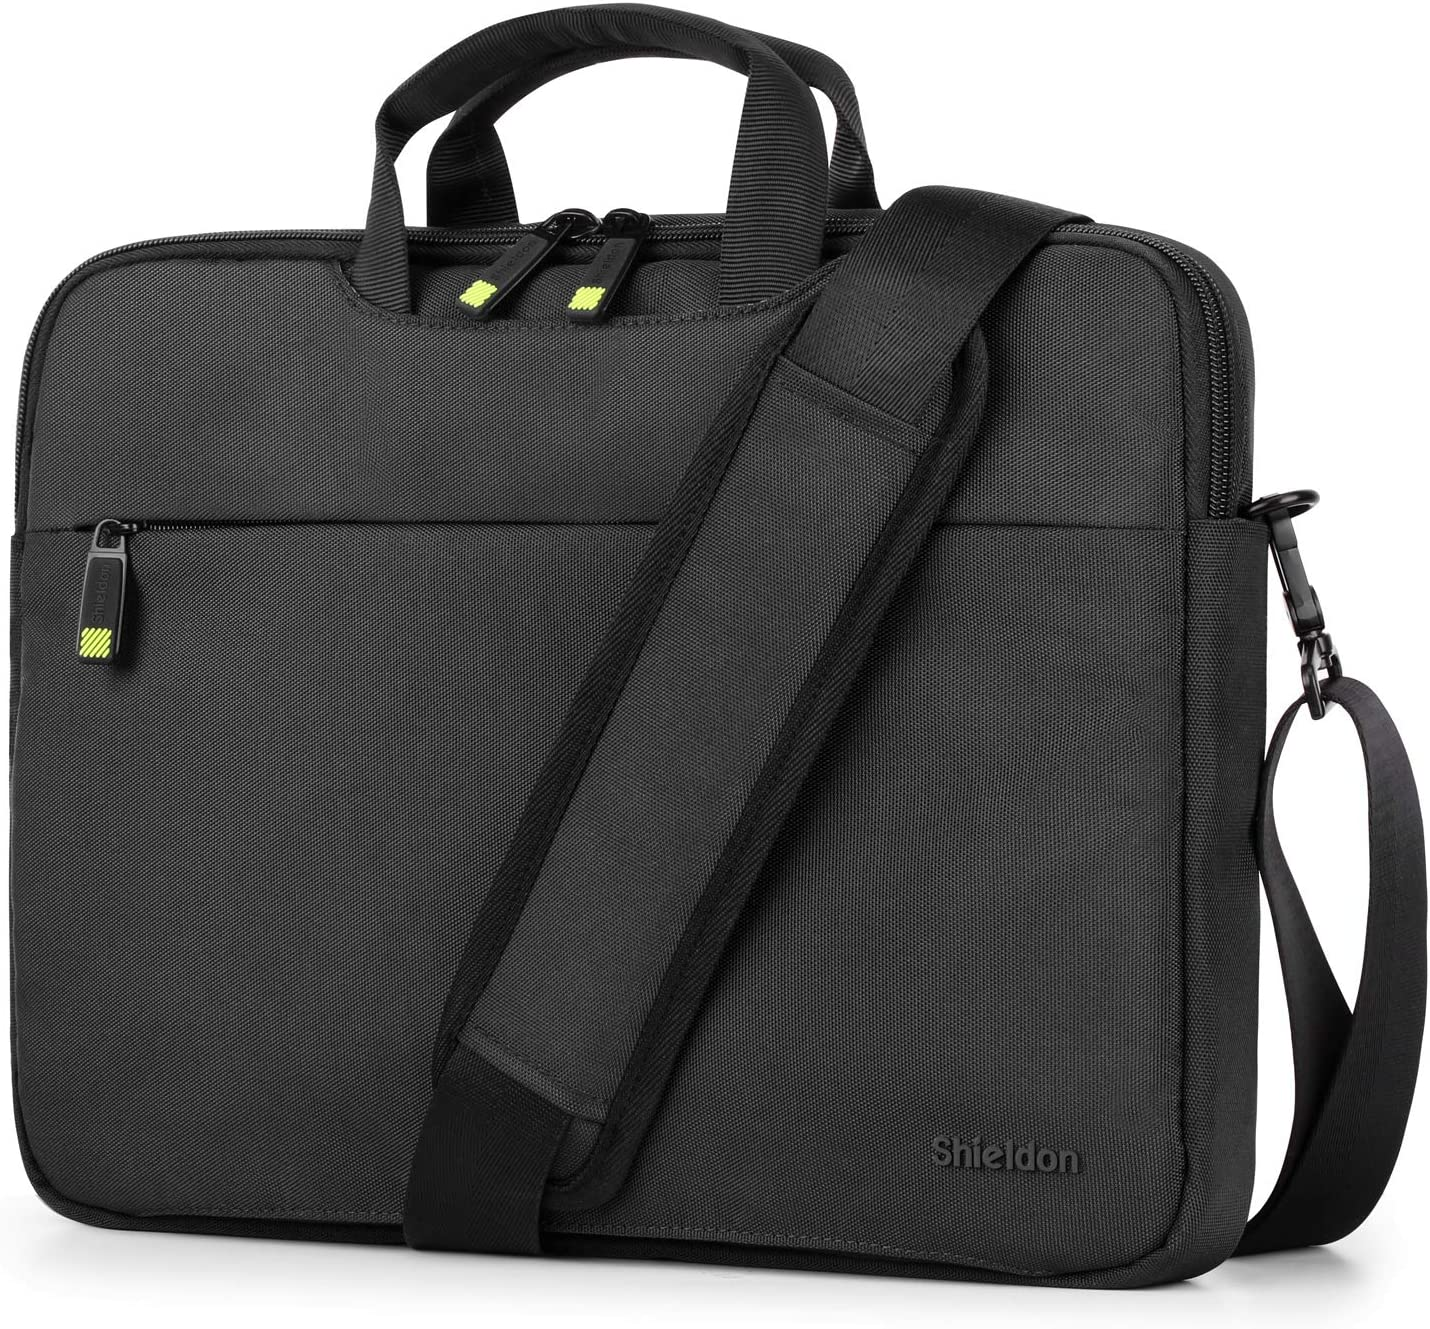 "SHIELDON 14-inch Laptop Sleeve Carry-on Briefcase Computer Protective Bag with Luggage Belt Compatible with 13.3"" MacBook Pro, 13.3"" MacBook Air, 12.9"" iPad Pro, Acer Chromebook Notebook - Black"